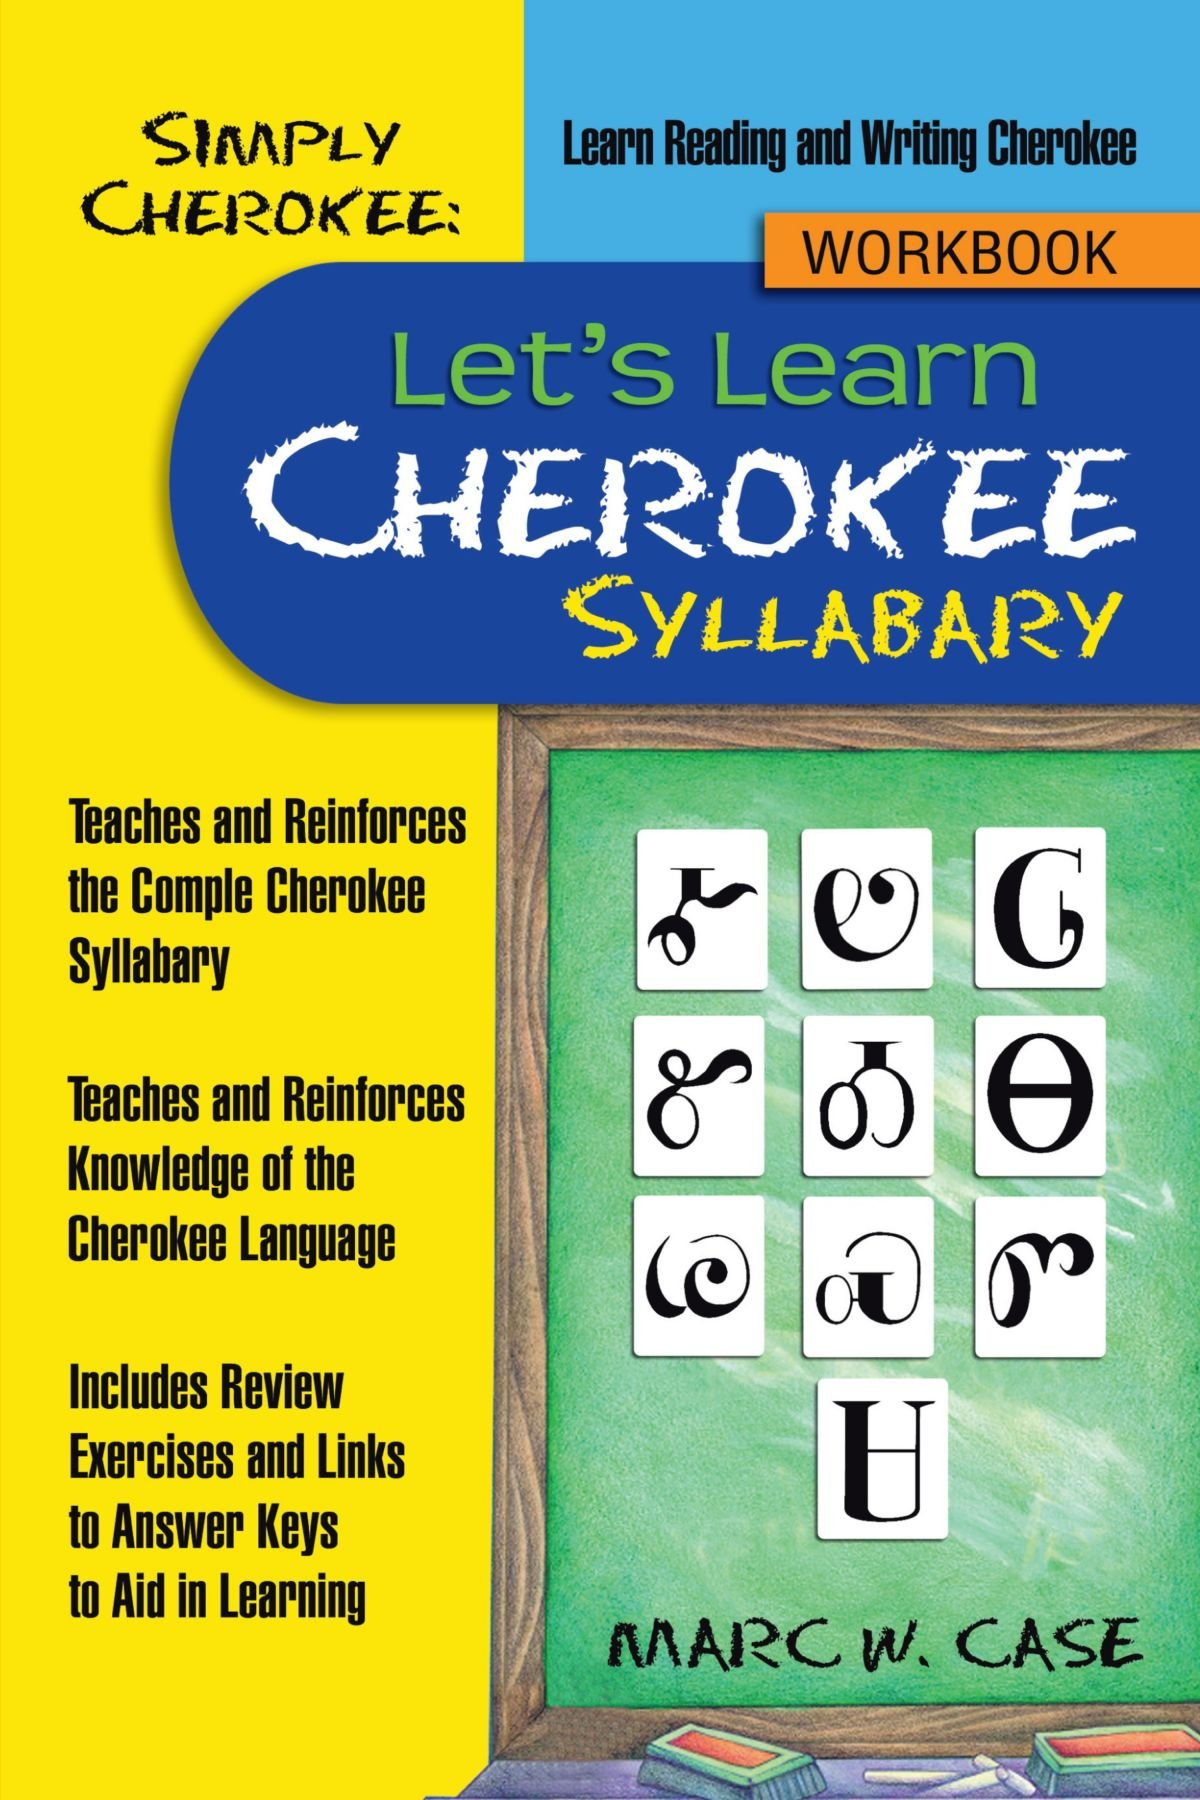 Simply Cherokee: Let's Learn Cherokee: Syllabary by AuthorHouse